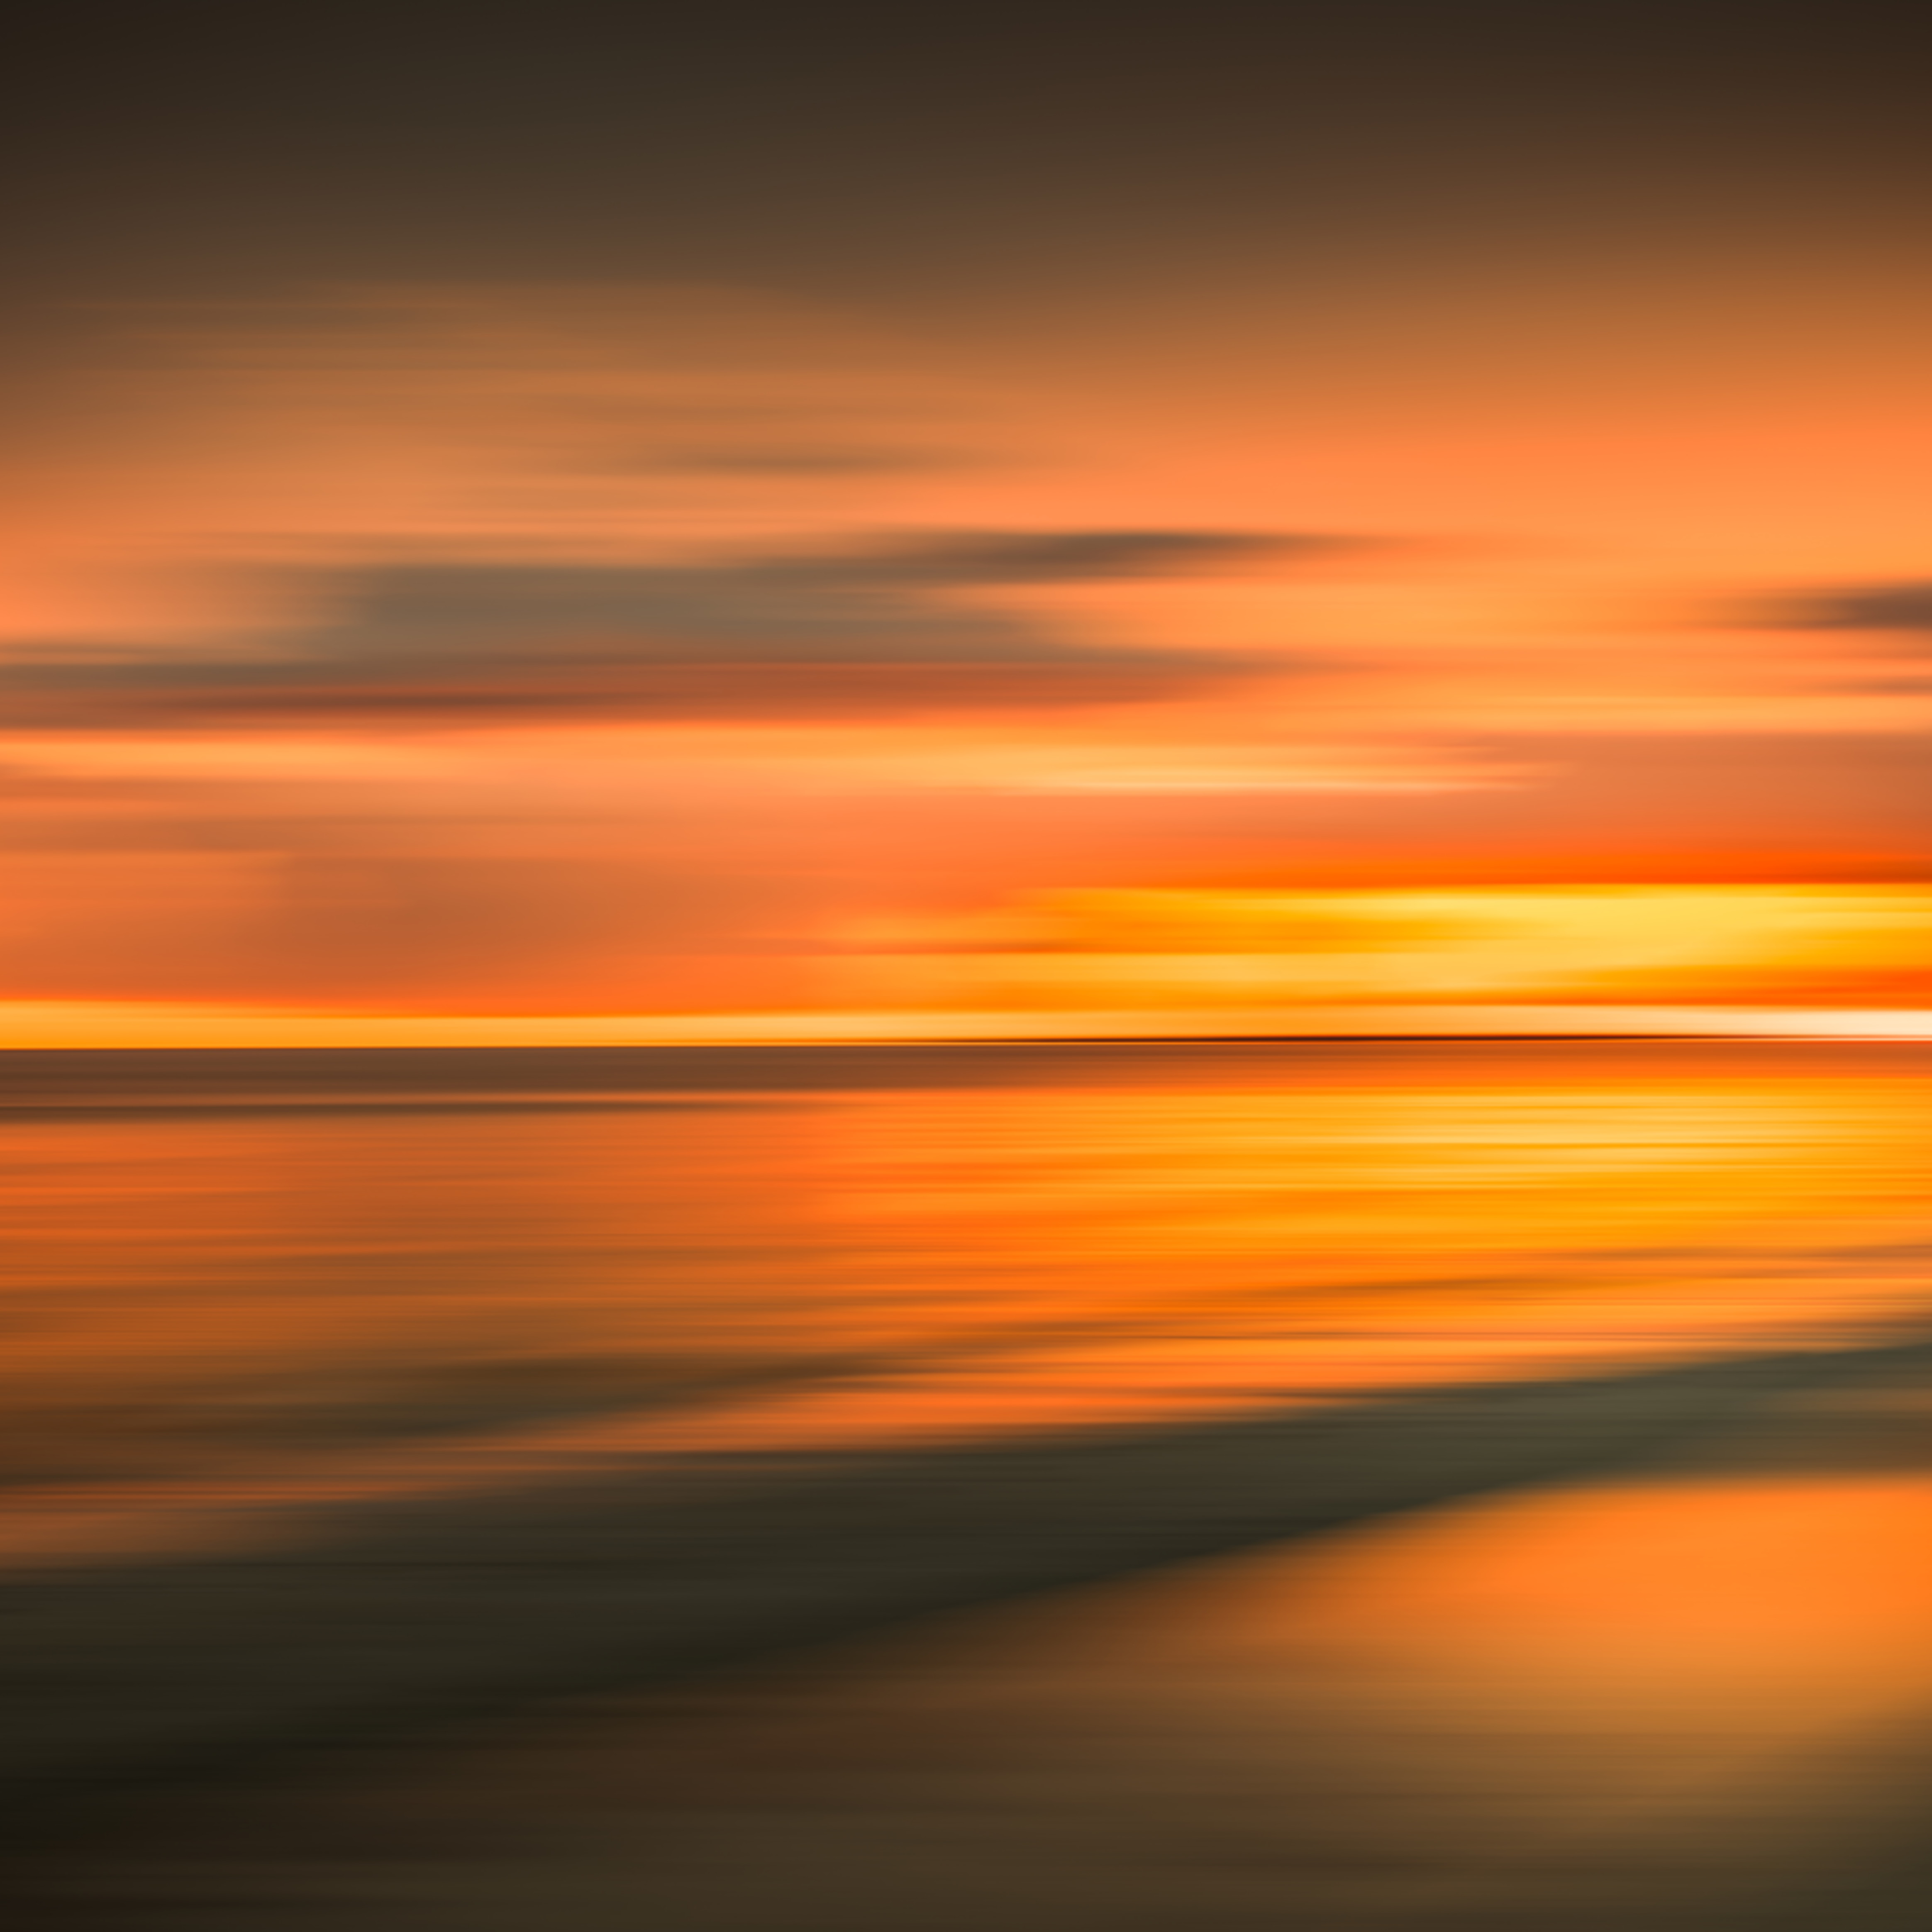 Abstract sunset 02 mzxf2m